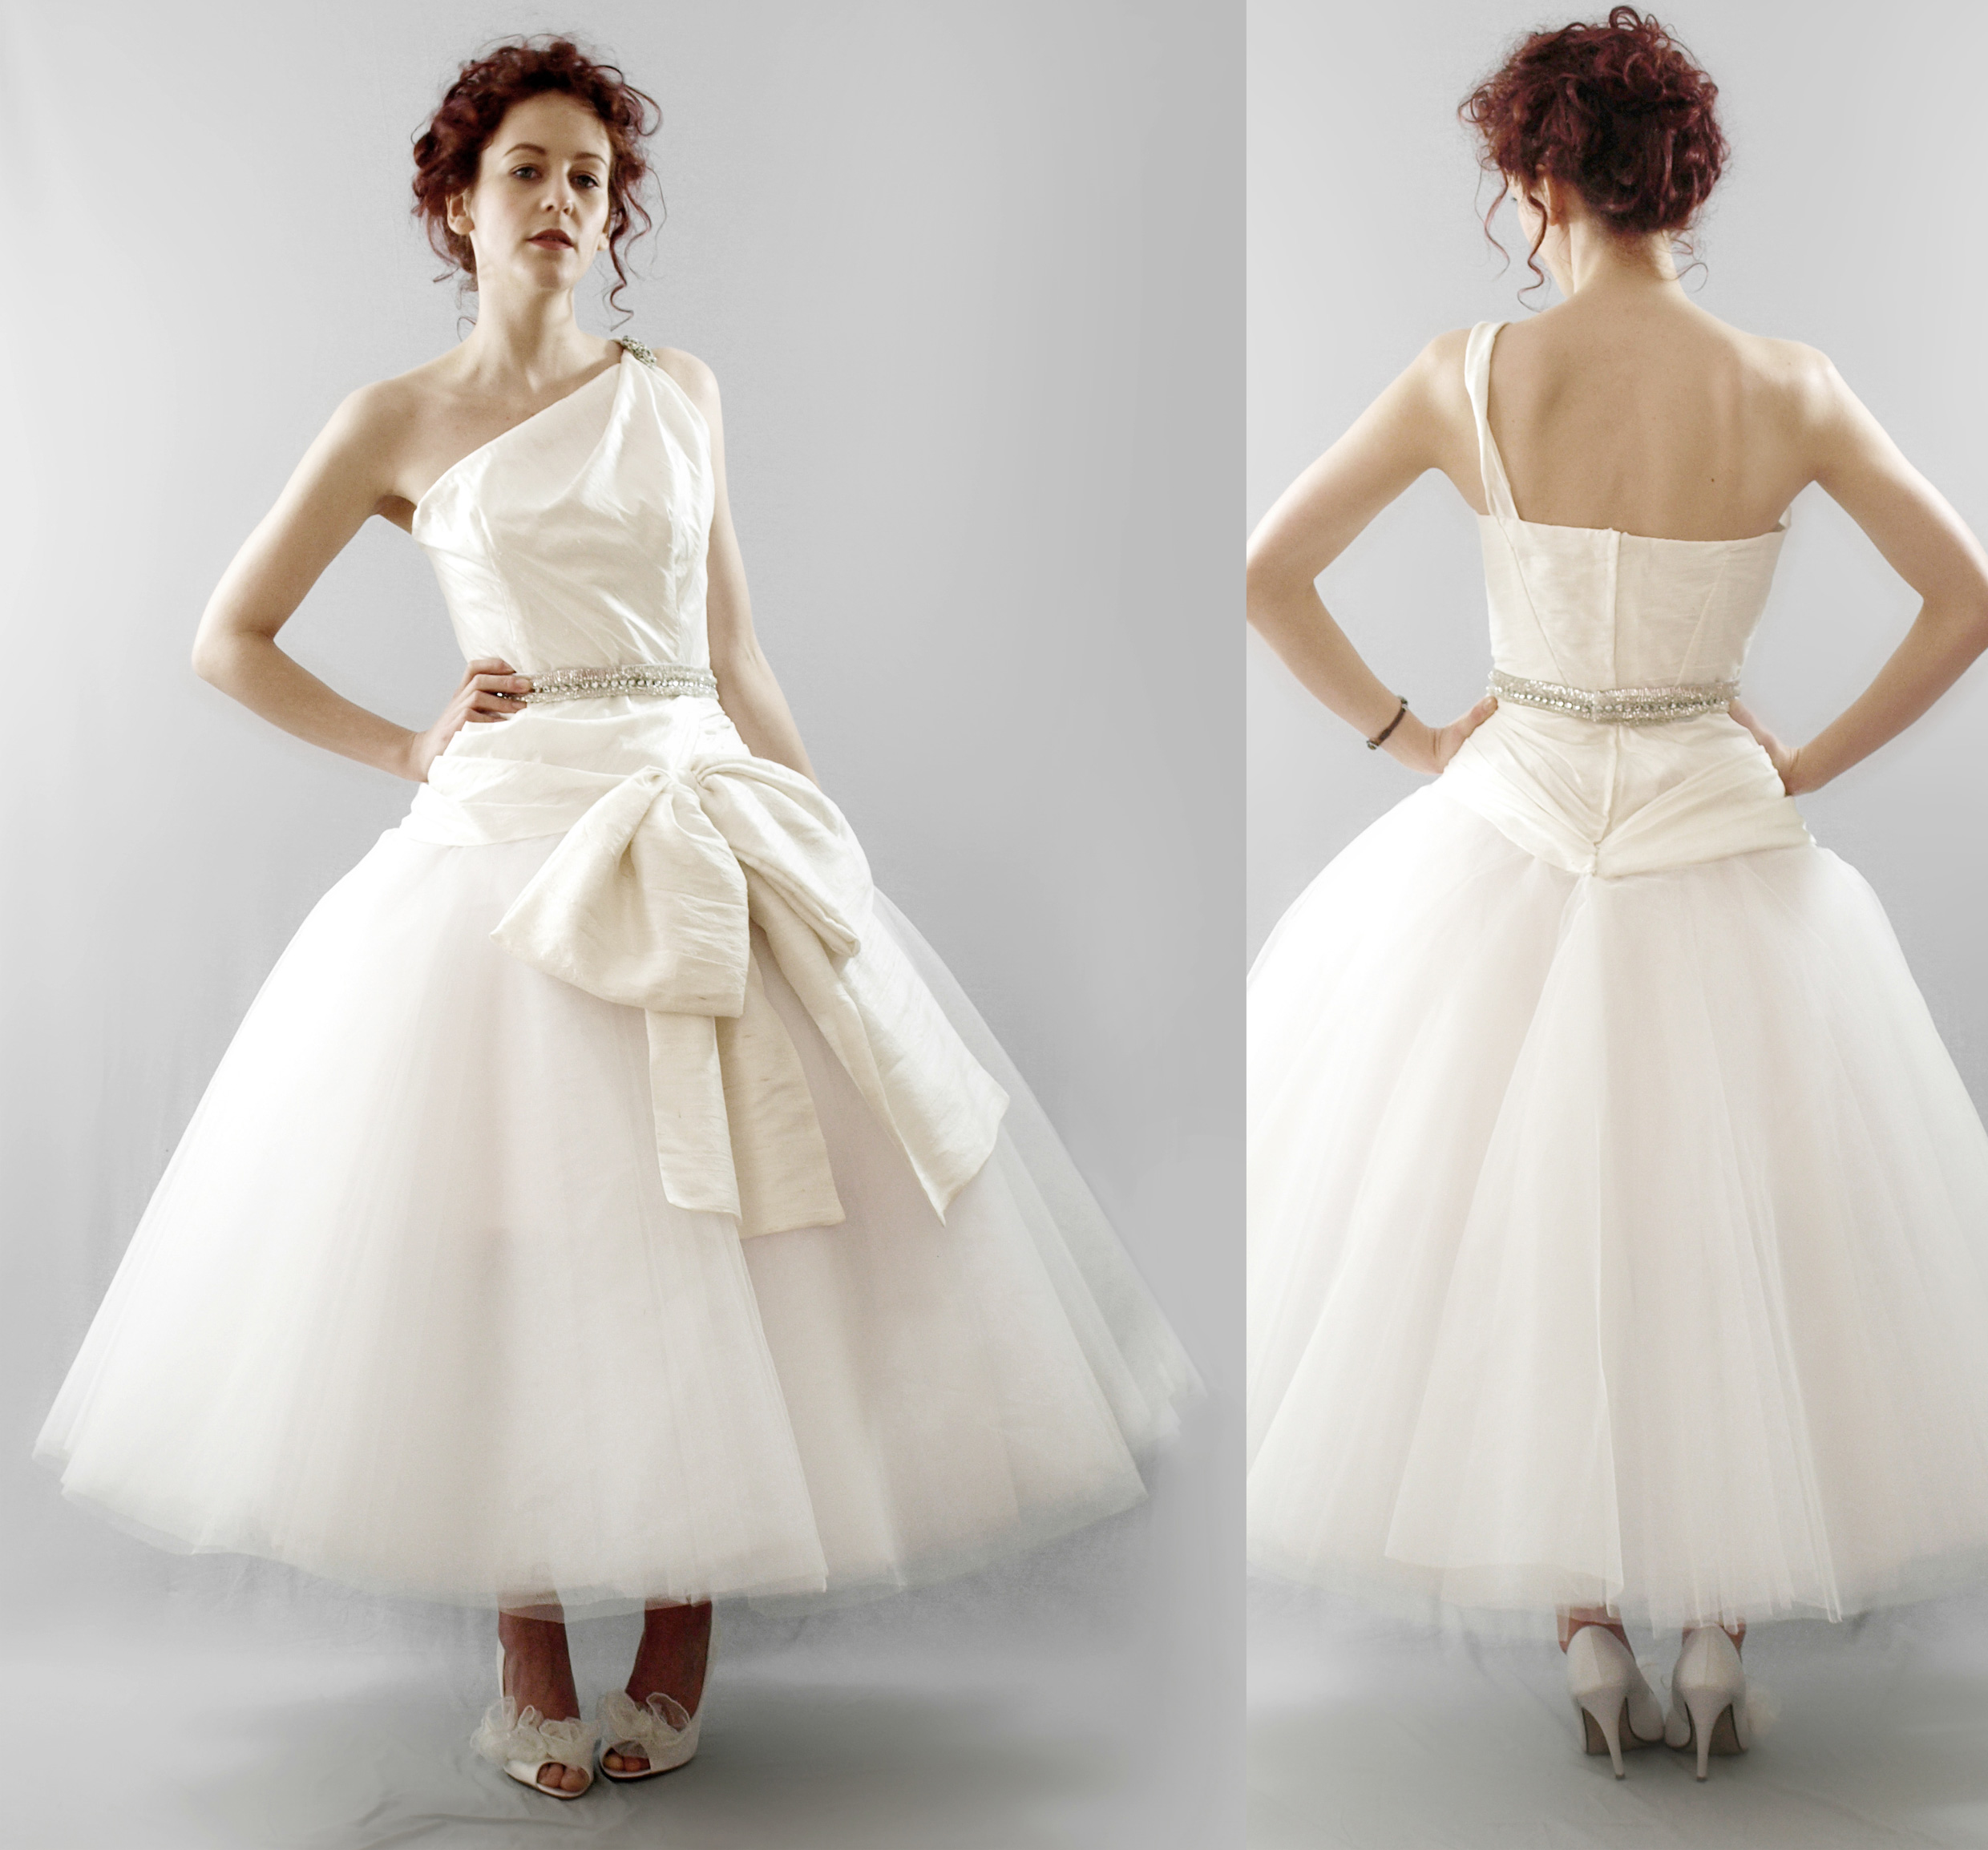 Vintage-inspired-short-wedding-dresses-tea-length-bridal-gown.original